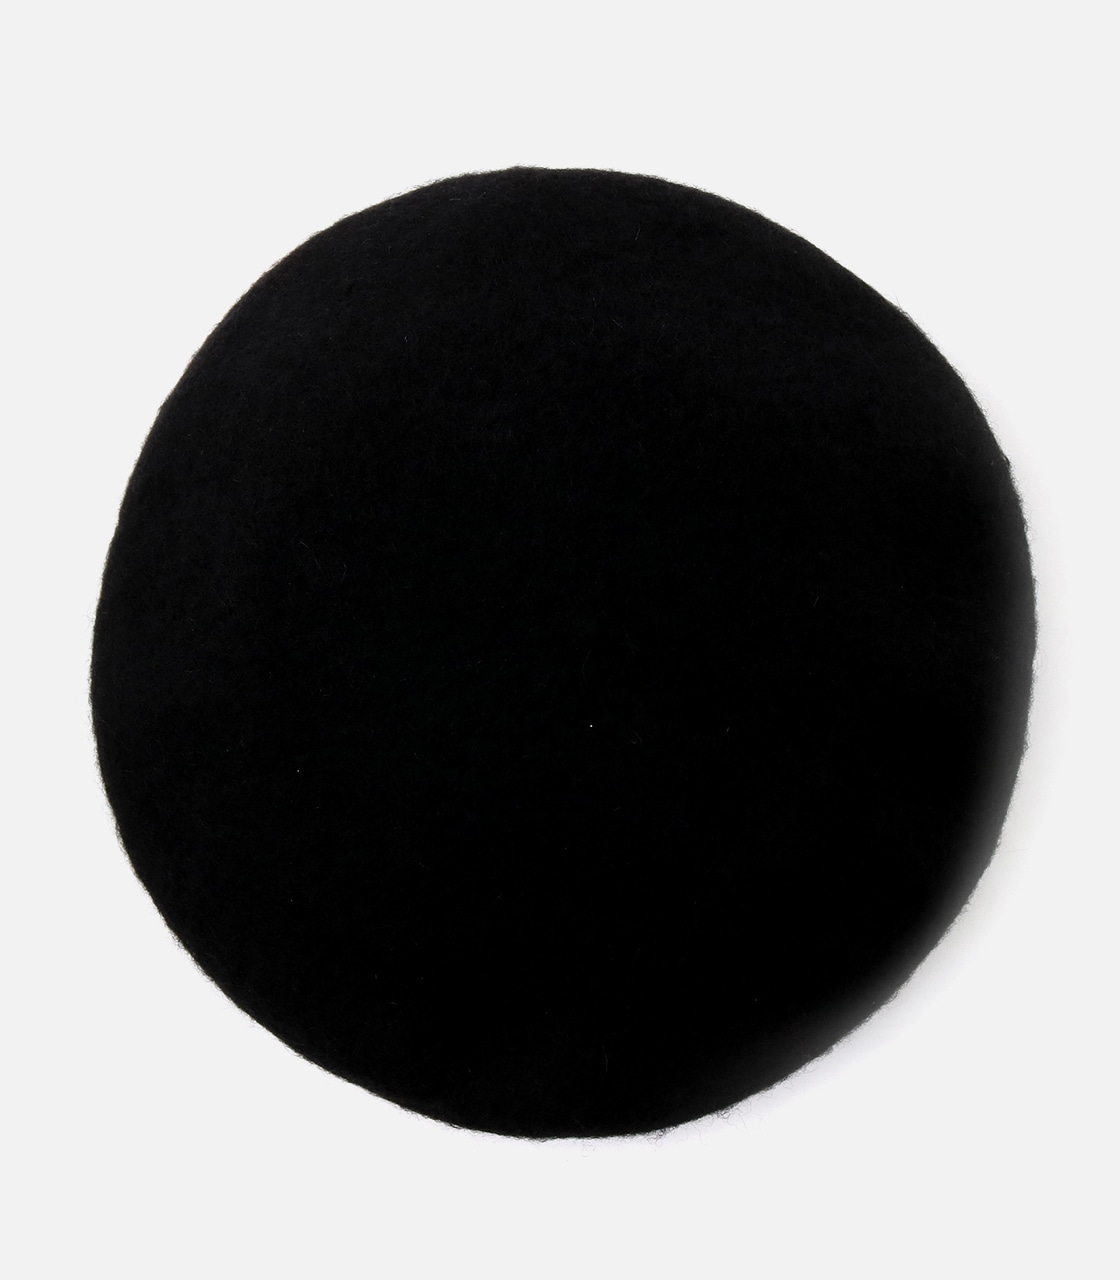 【AZUL BY MOUSSY】BASQUE BERET 詳細画像 BLK 3